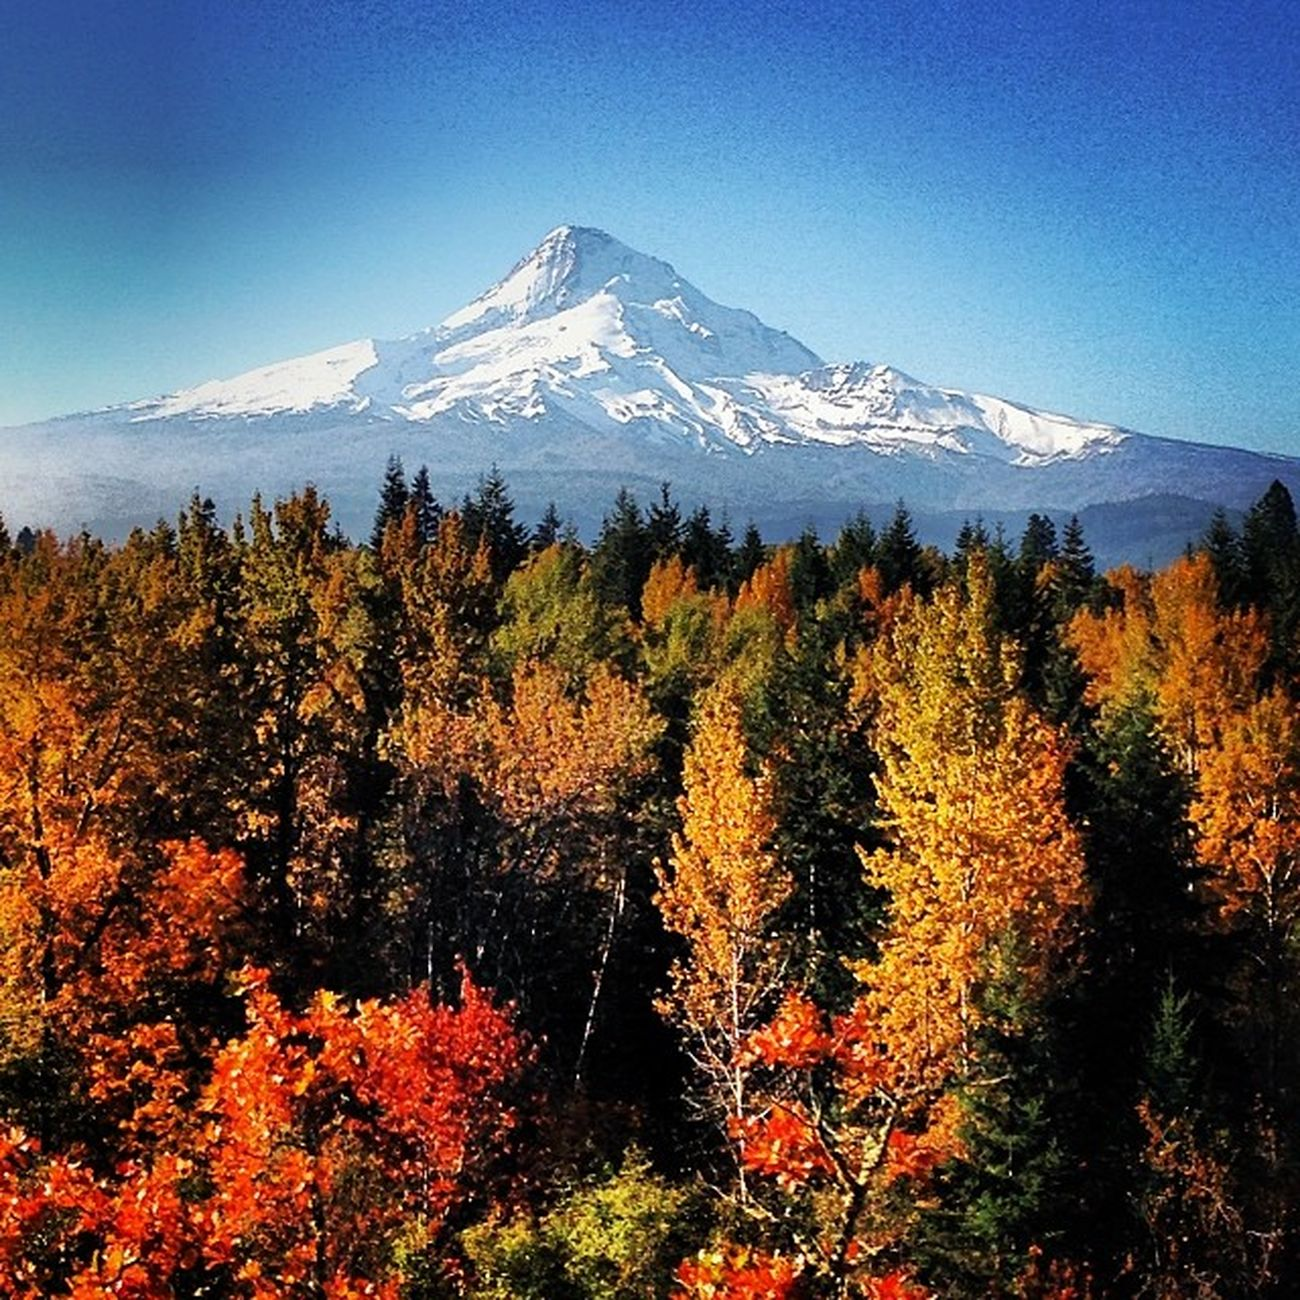 MtHood Livelife Lovelife Hoodriver HOODLIFE Fall Autumn Itsamazingoutthere Exploregon